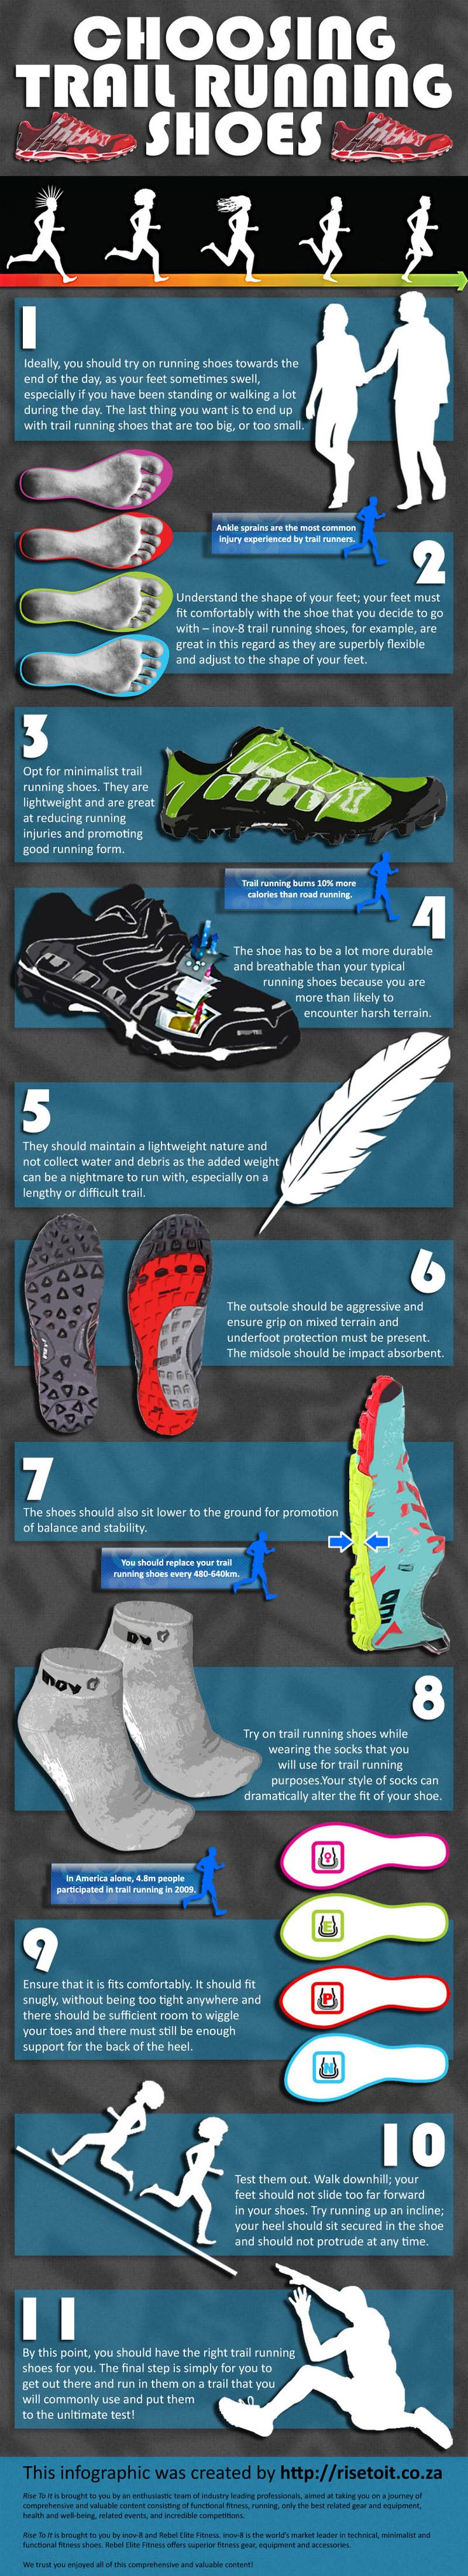 Choosing Trail Running Shoes, Tip one is also great when buying any kind of shoe.